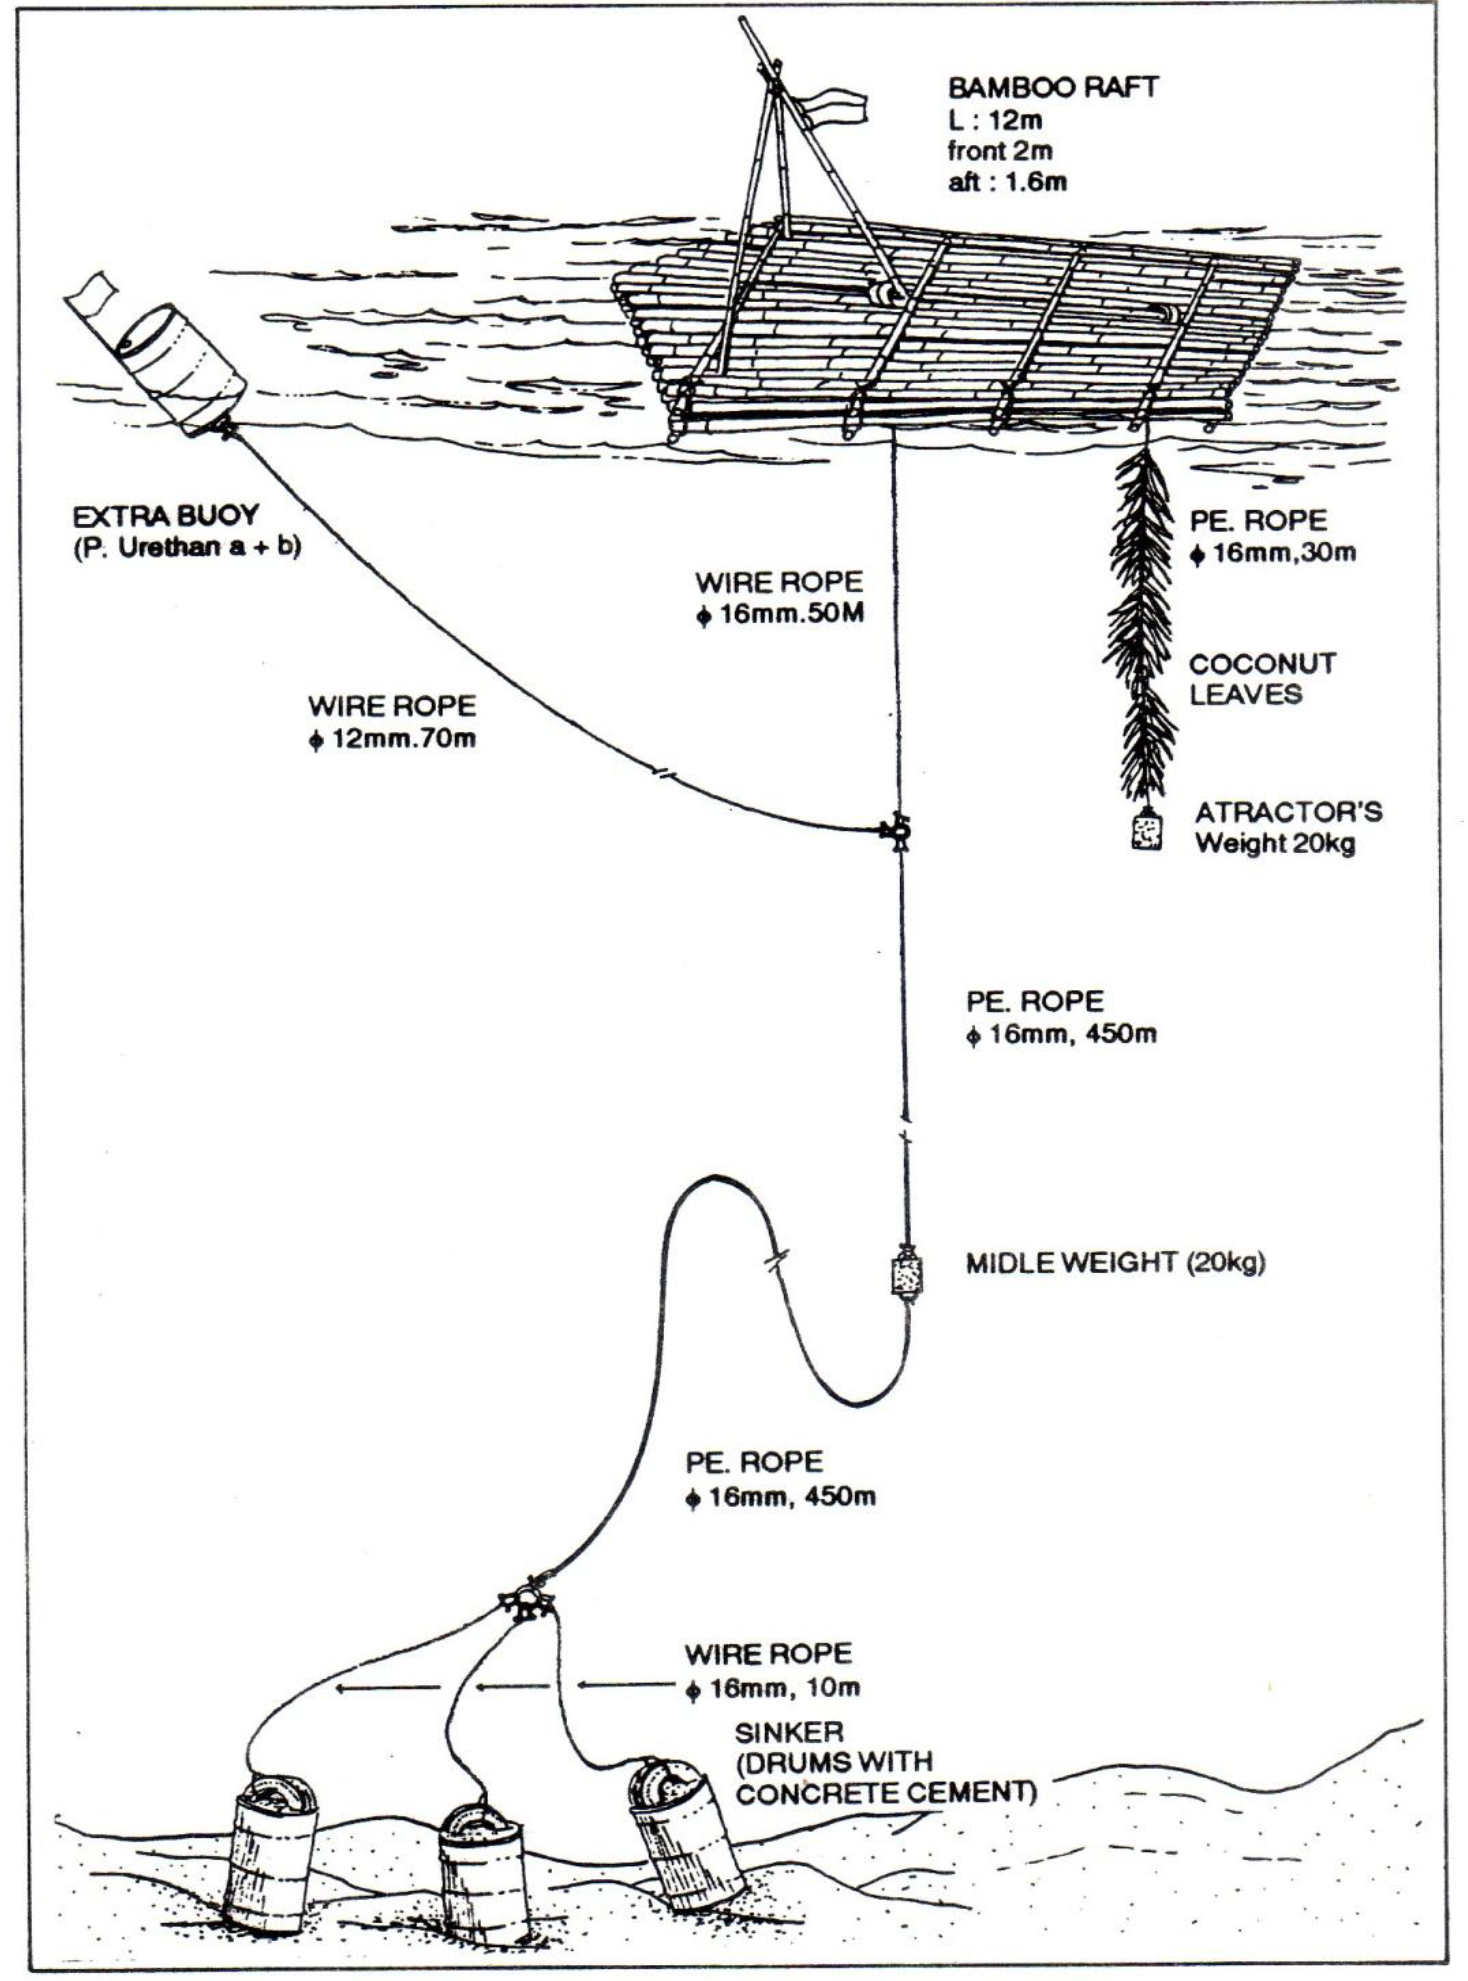 IMPACT OF FISH AGGREGATING DEVICE ON SUSTAINABLE CAPTURE